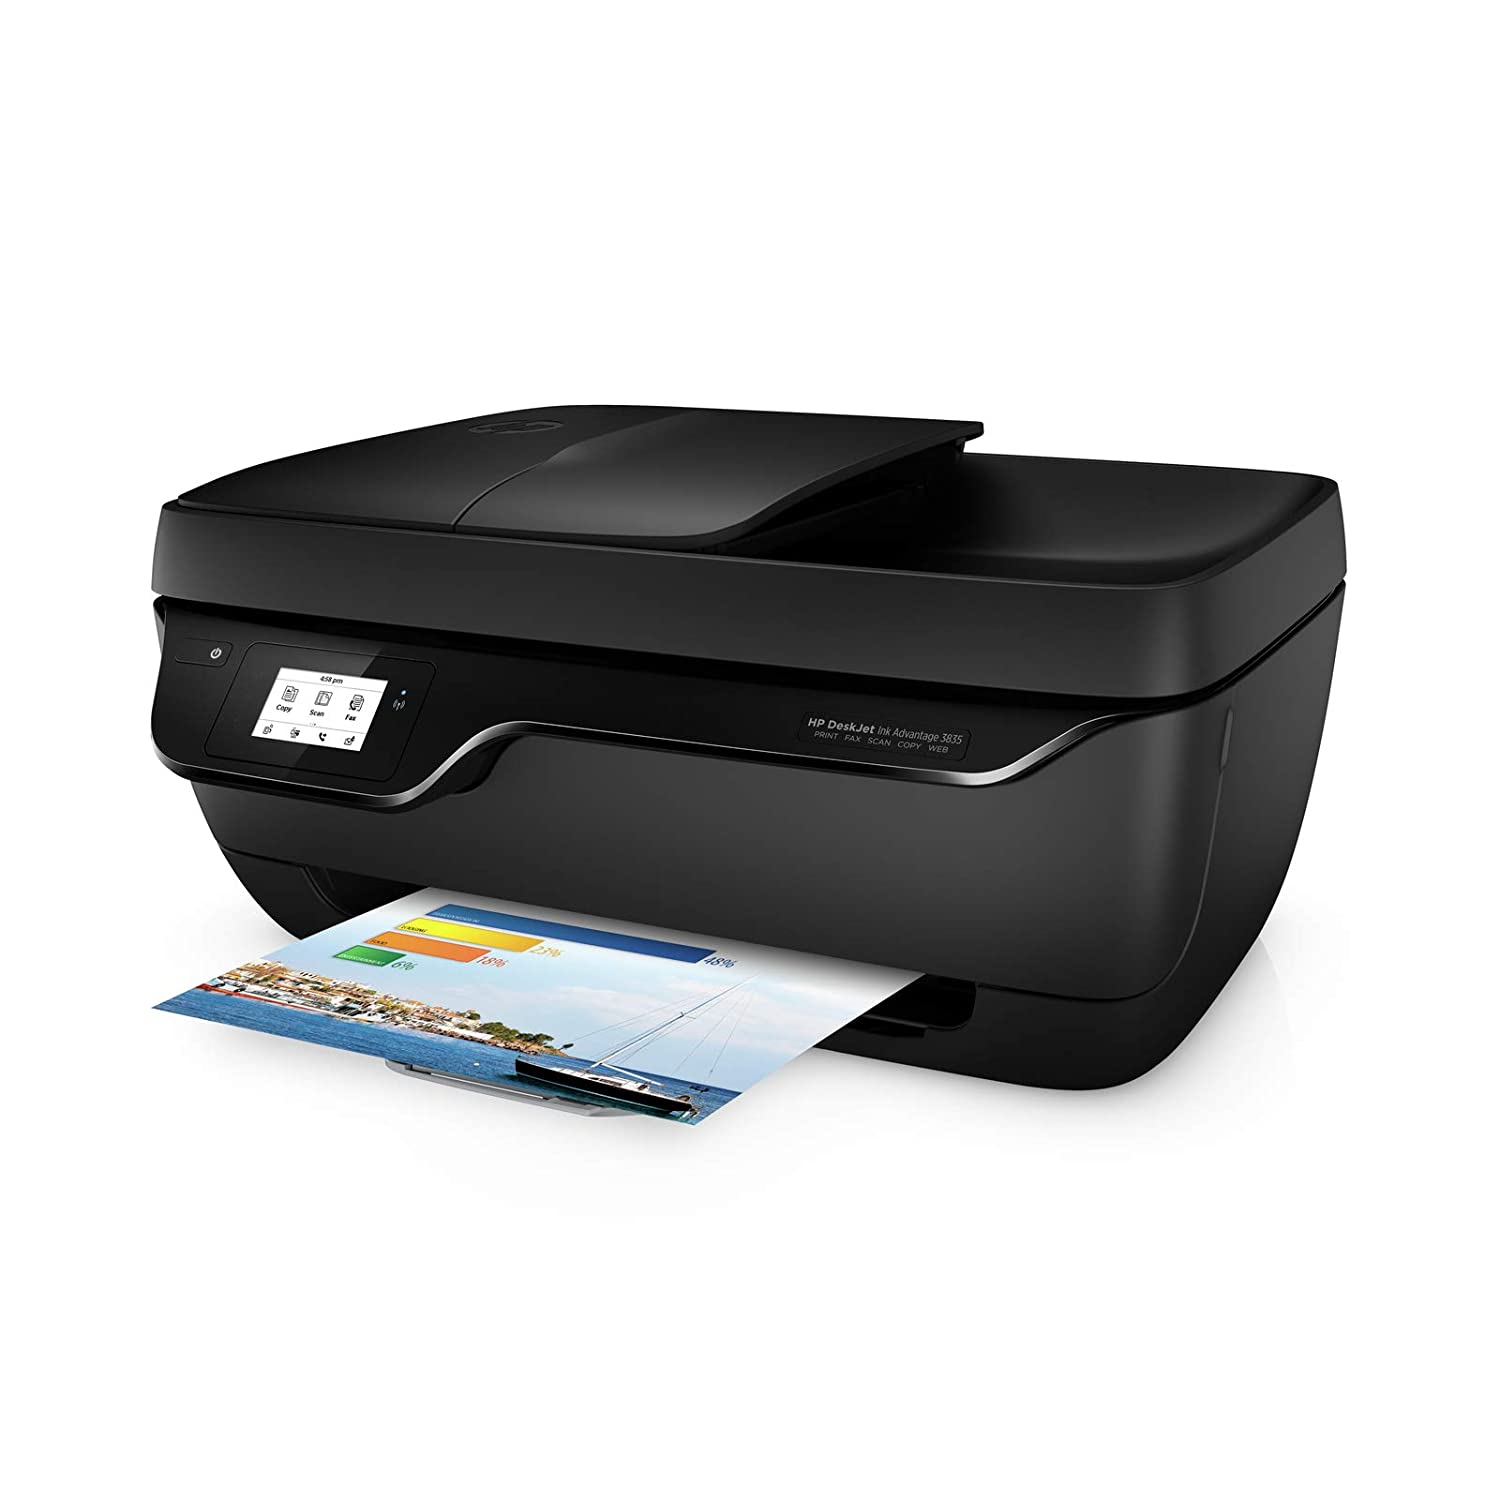 Advantages of the inkjet printer and its shortcomings